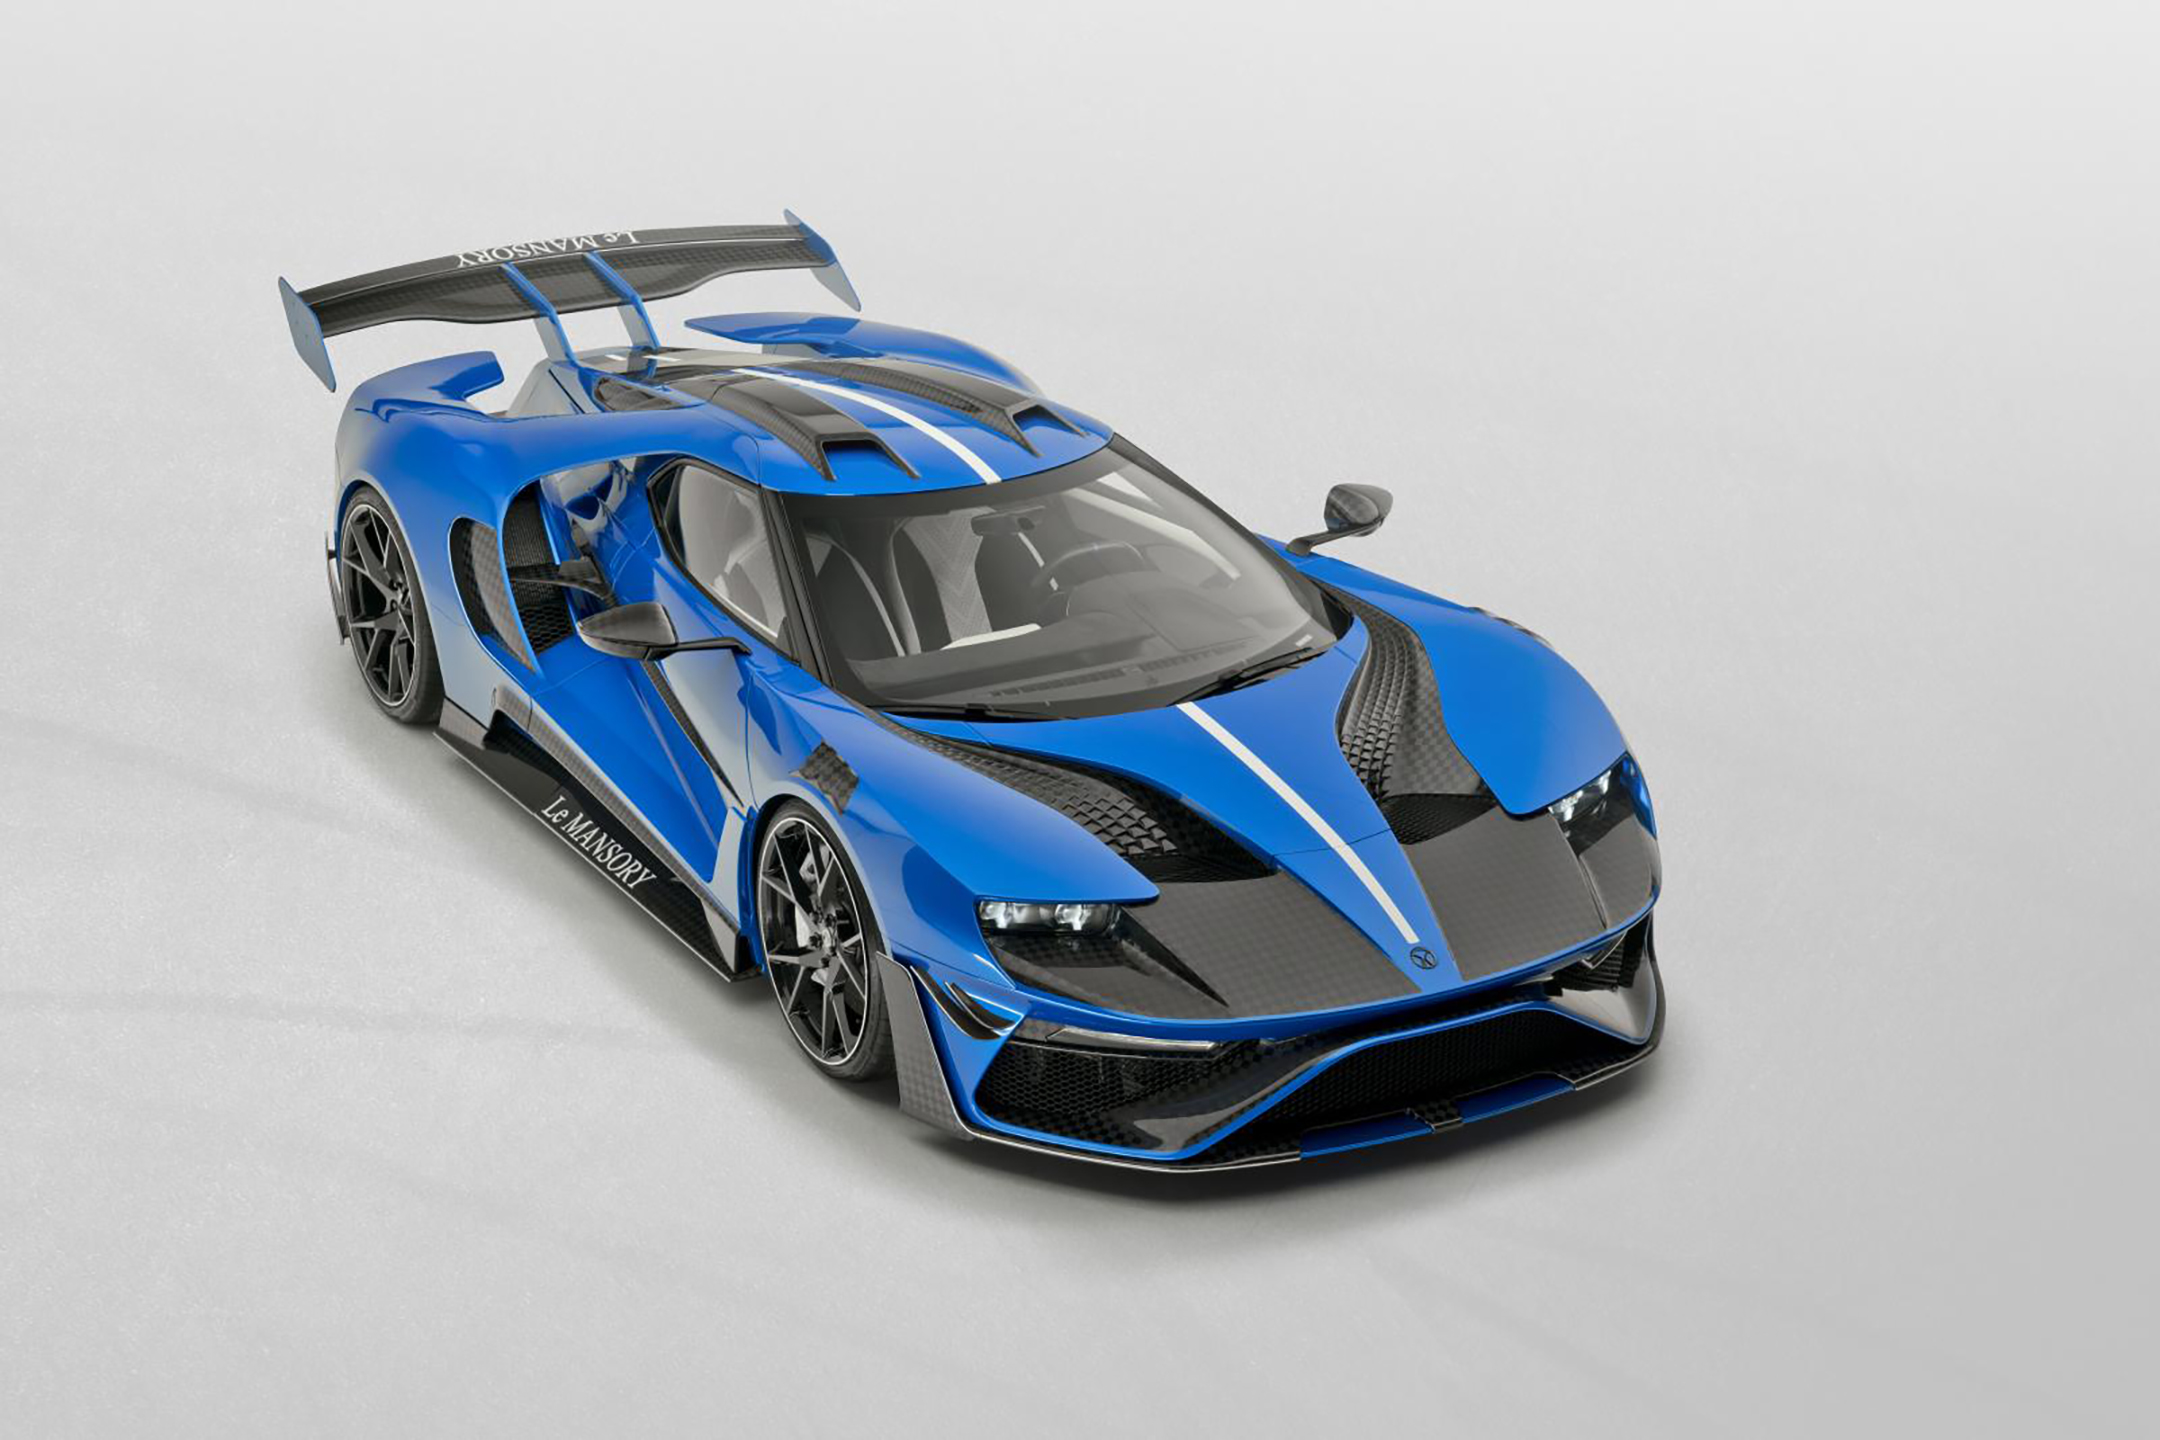 Le MANSORY - Ford GT custom - 2020 - top view - front side-face / profil avant